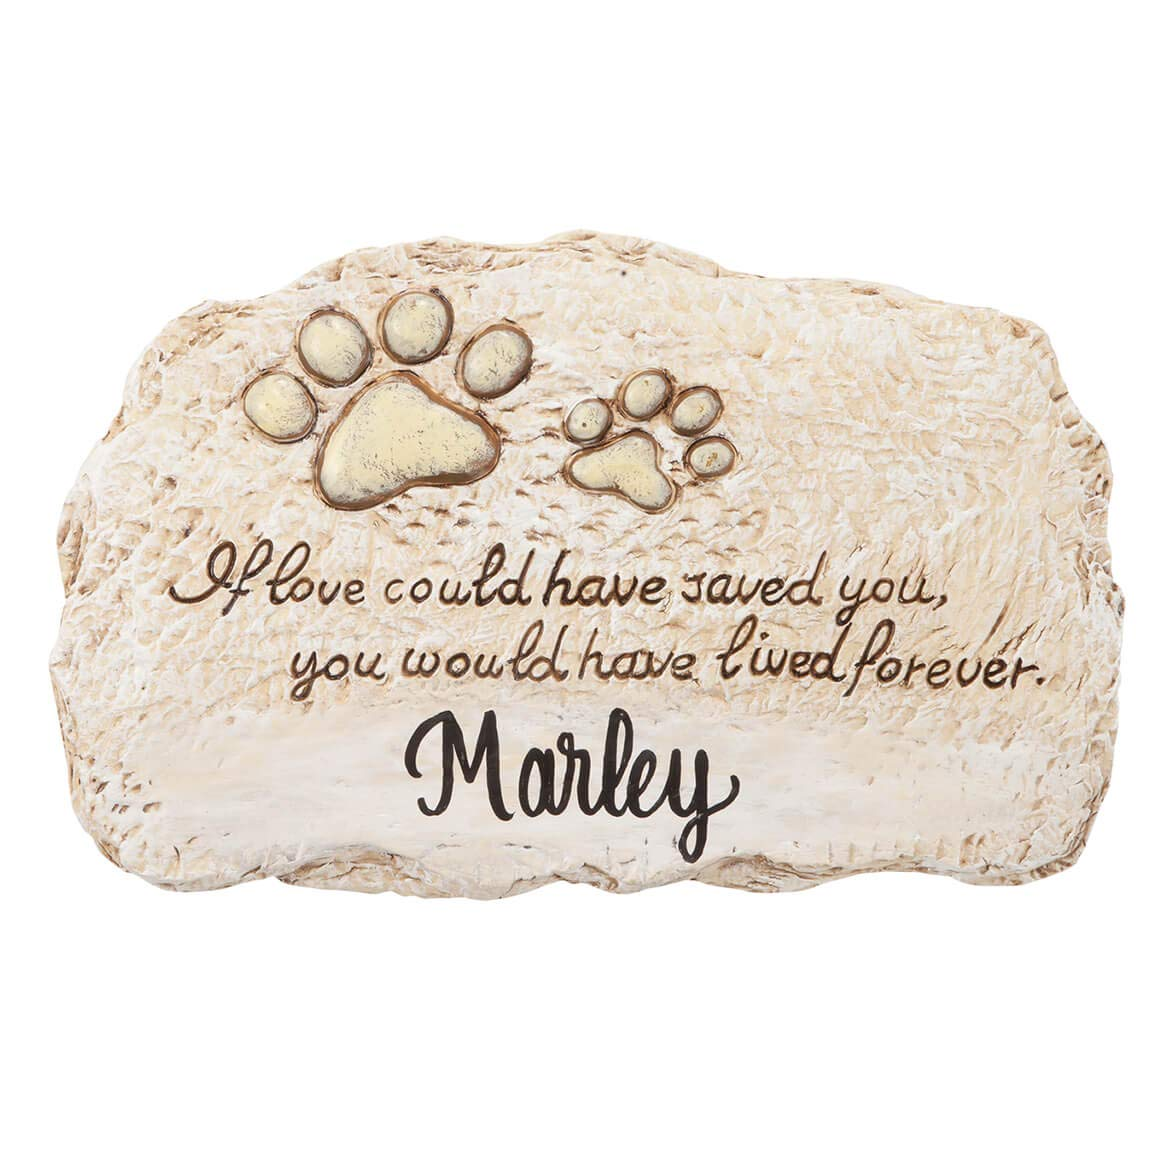 Fox Valley Traders Personalized Forever Pet Memorial, Customized Indoor/Outdoor Resin Garden Stone, Loss of Pet Sympathy Gift